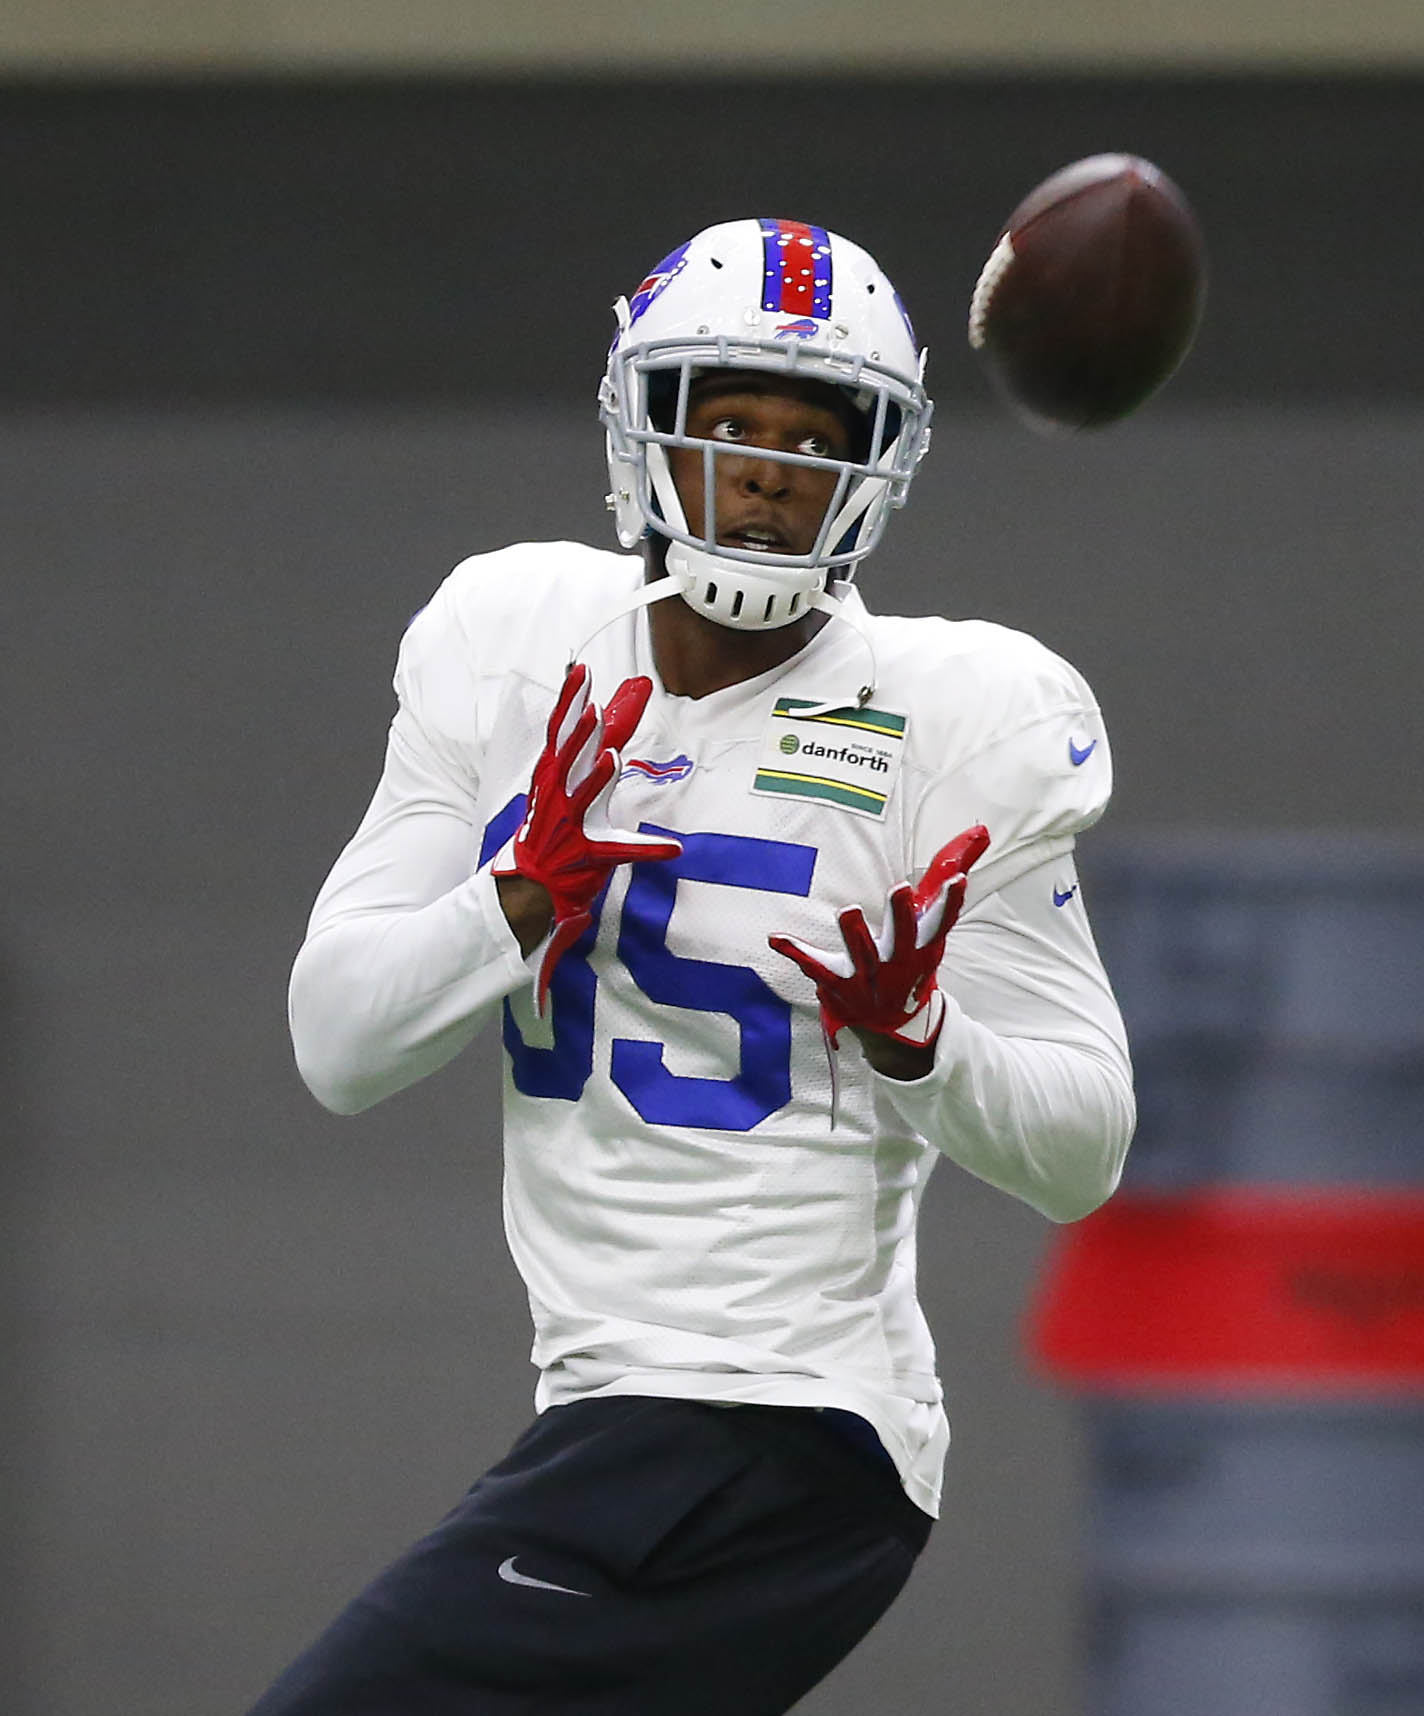 The Bills will have to closely manage tight end Charles Clay's practice reps. (James P. McCoy/Buffalo News)